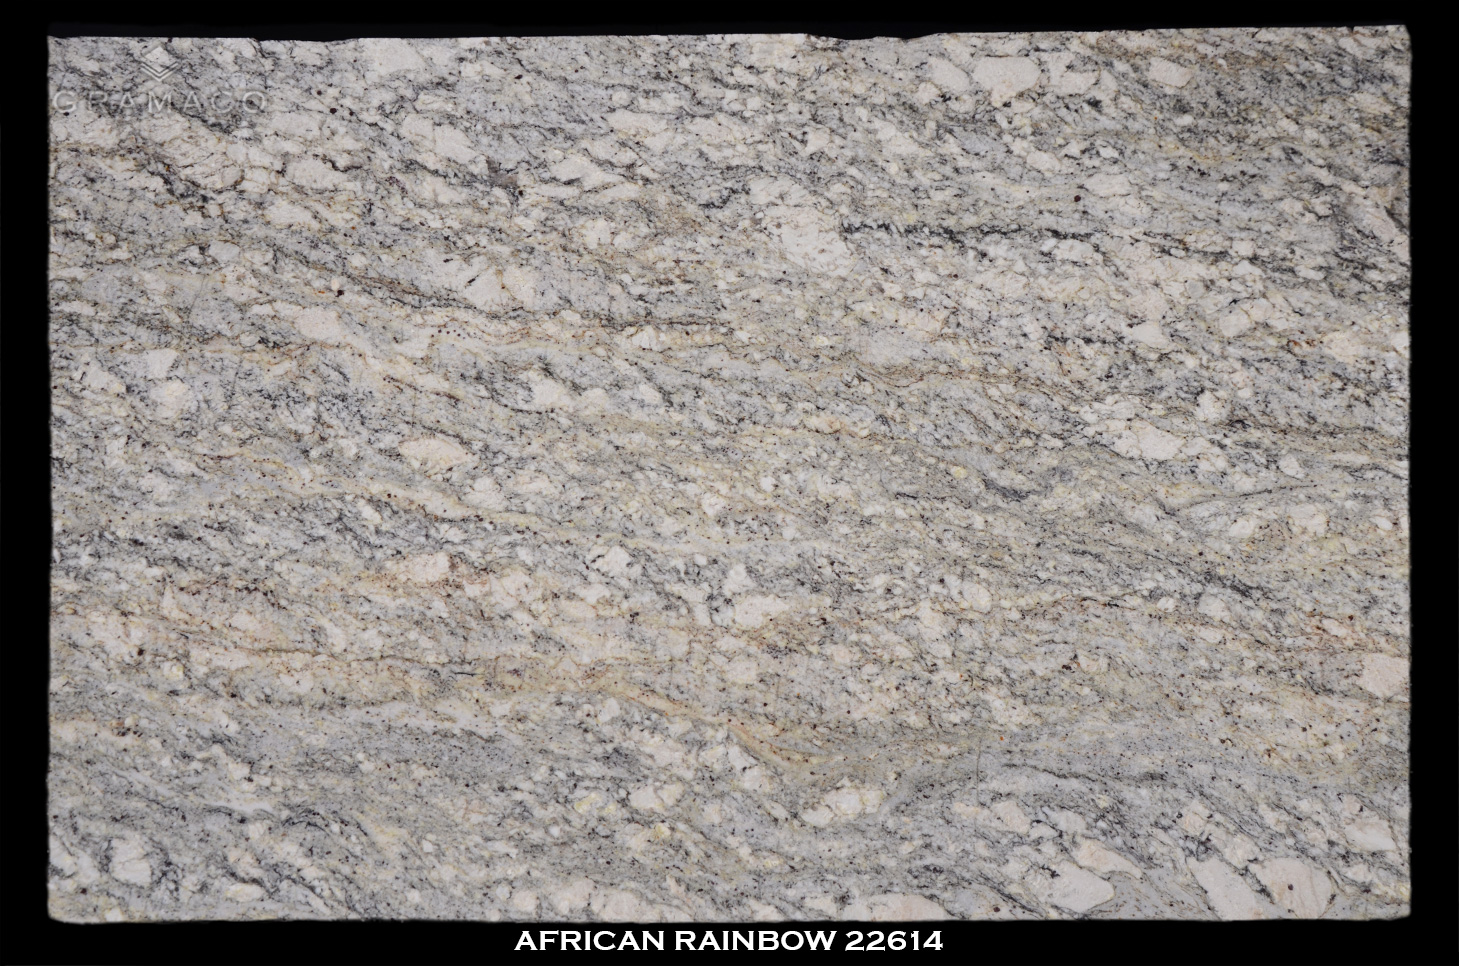 AFRICAN-RAINBOW-22614---FULL-SLAB-BLACK